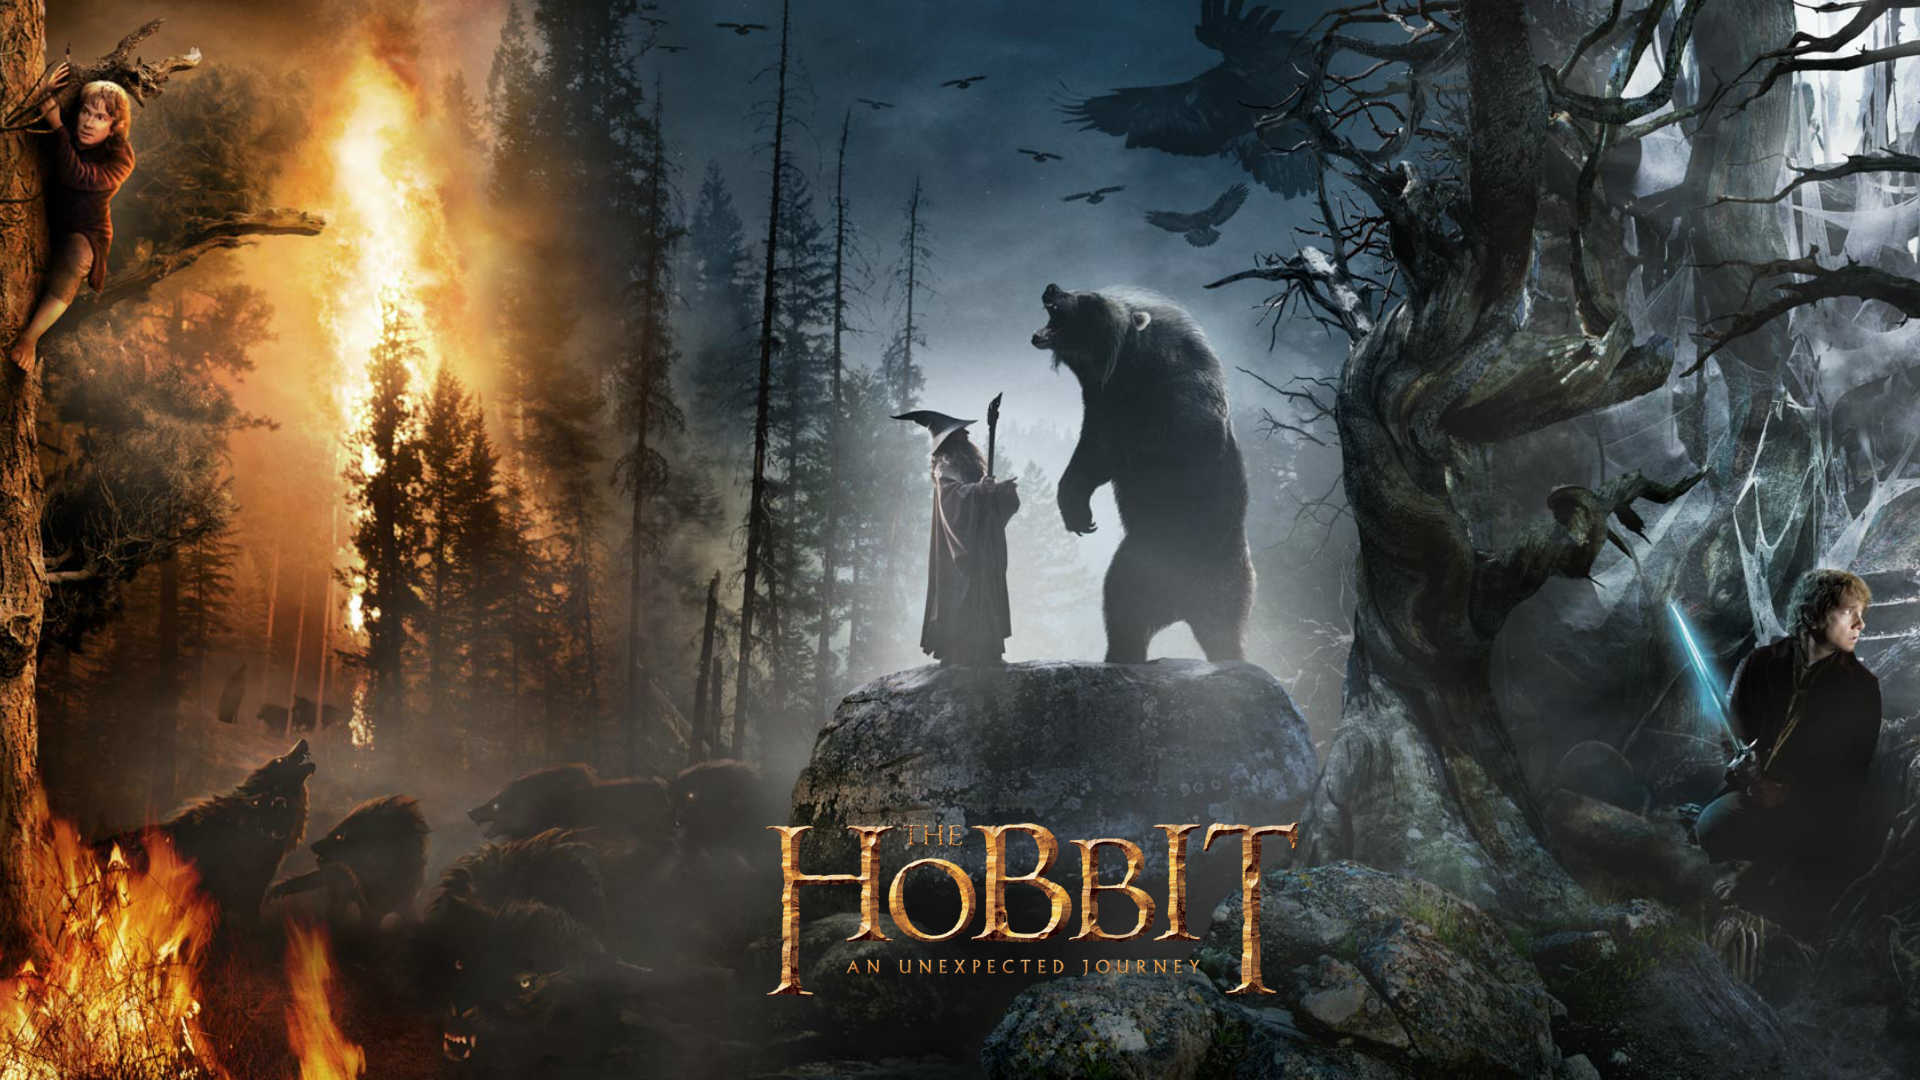 The Hobbit Wallpaper 1920x1080 1920x1080